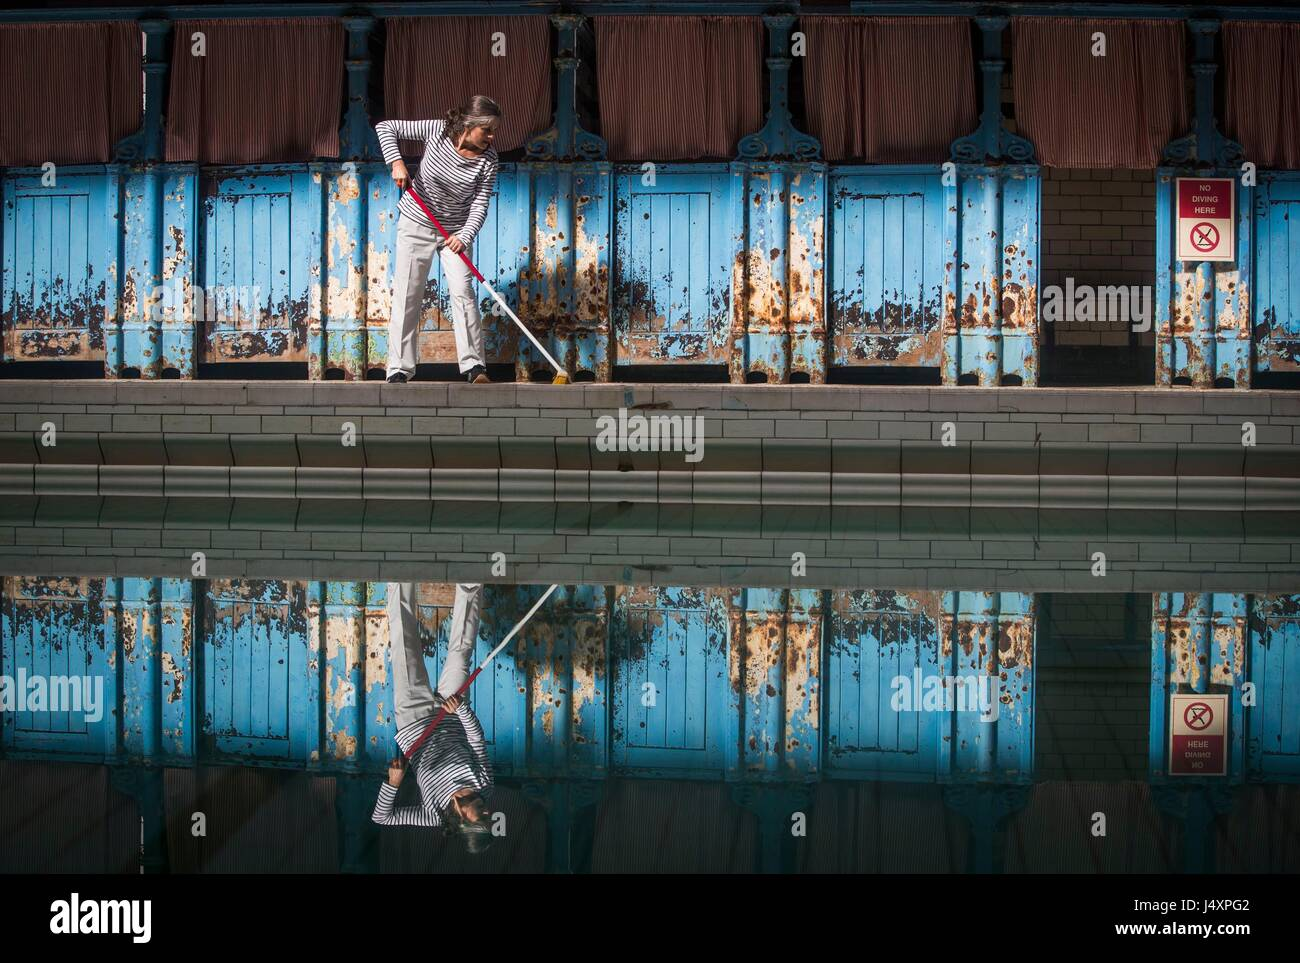 A woman mops the floor at Victoria Baths in Manchester, ahead of their open swim day to raise funds for restoration - Stock Image